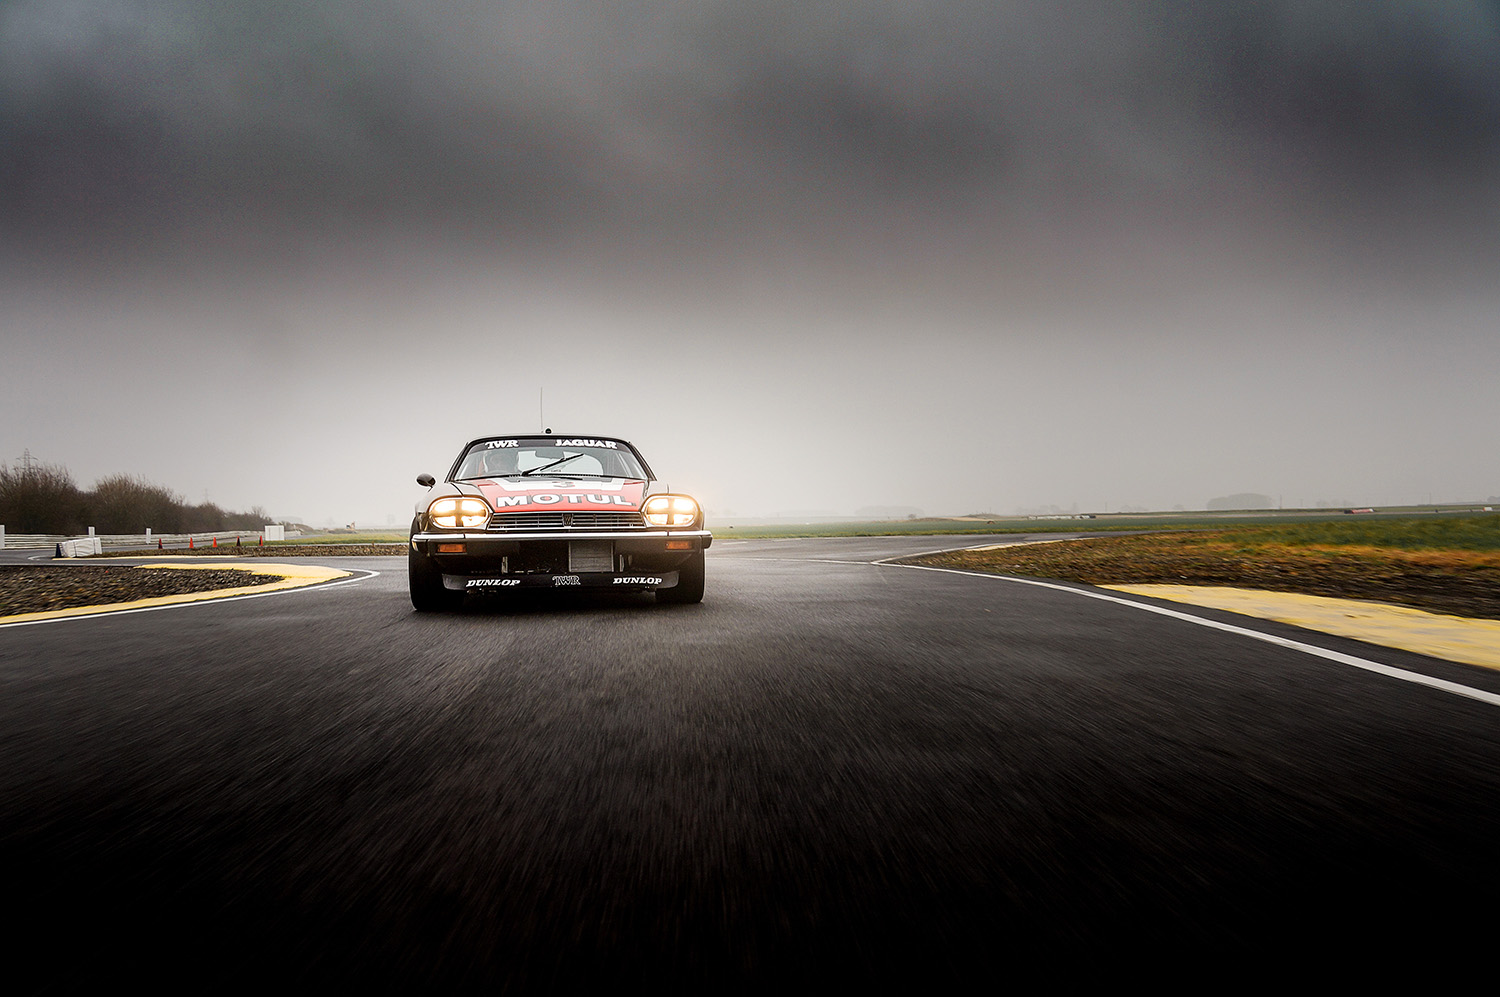 jaguar_twr_xjs_walkinshaw_wilkinson_sayer_selection_scragg_blyton_circuit_2.jpg